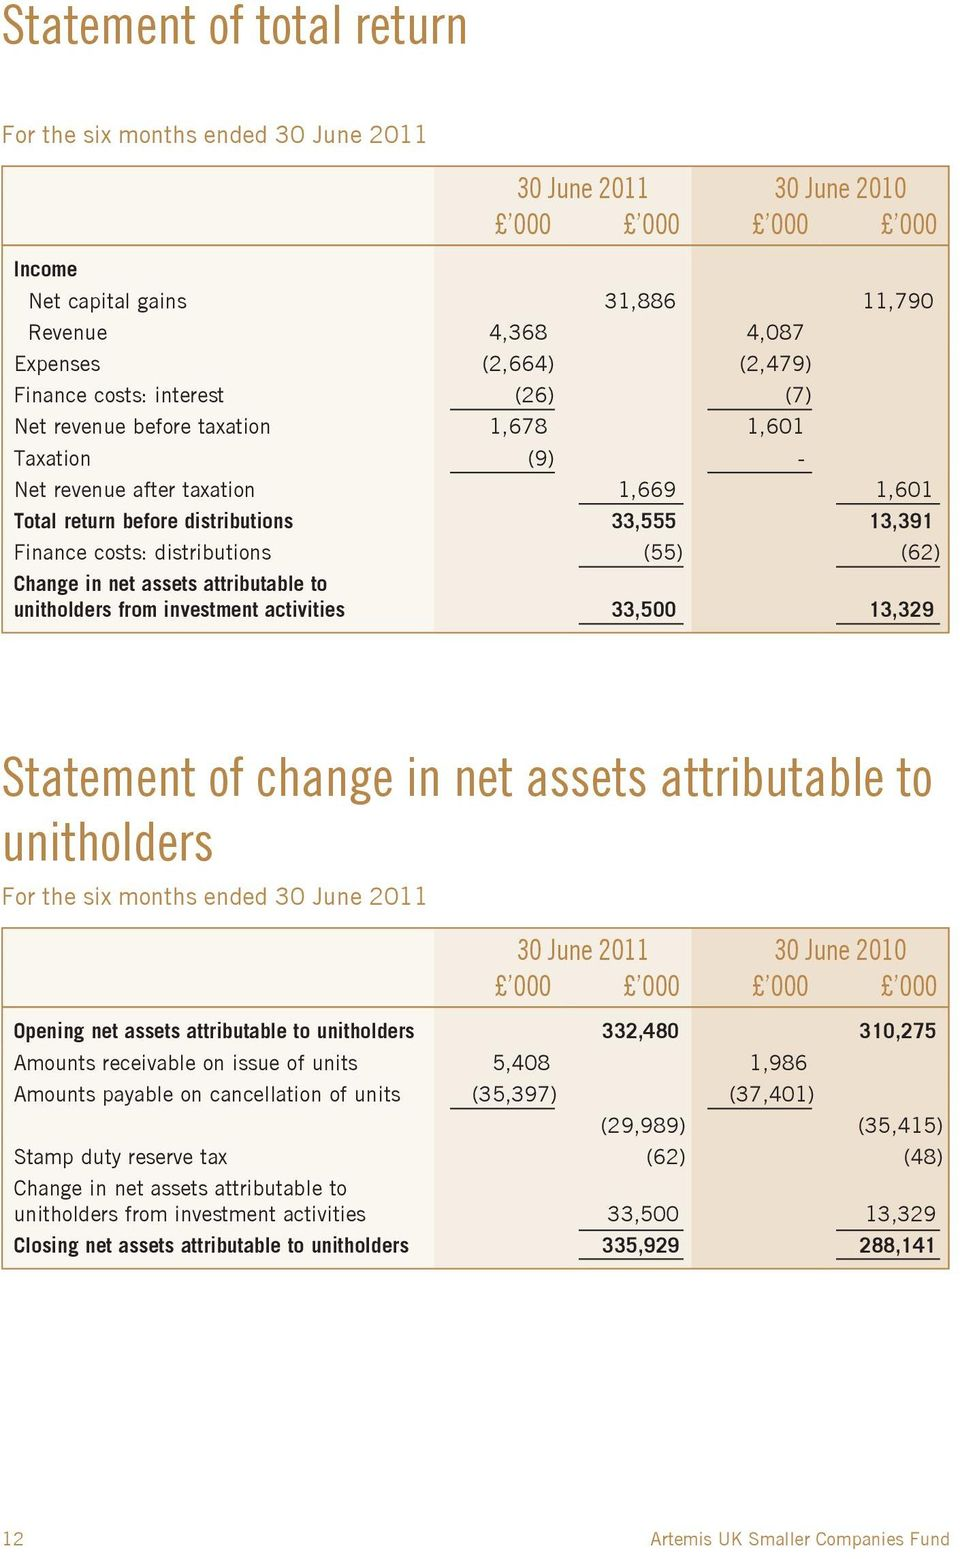 (55) (62) Change in net assets attributable to unitholders from investment activities 33,500 13,329 Statement of change in net assets attributable to unitholders For the six months ended 30 June 2011